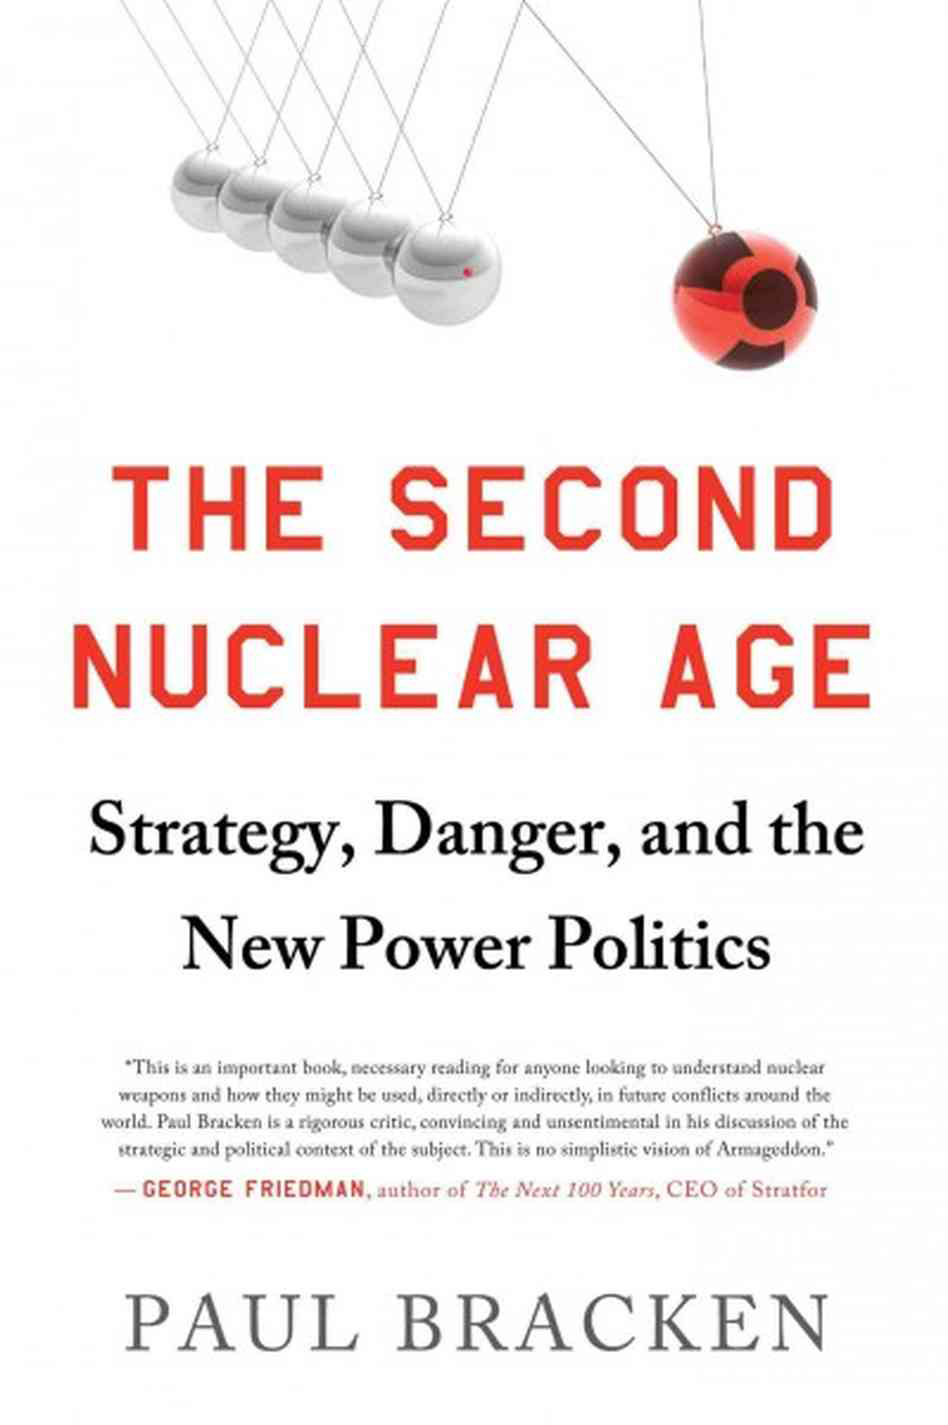 Paul Bracken: The Second Nuclear Age. Strategy, Danger and the New Power Politics. Times Books 2012, 306 s.